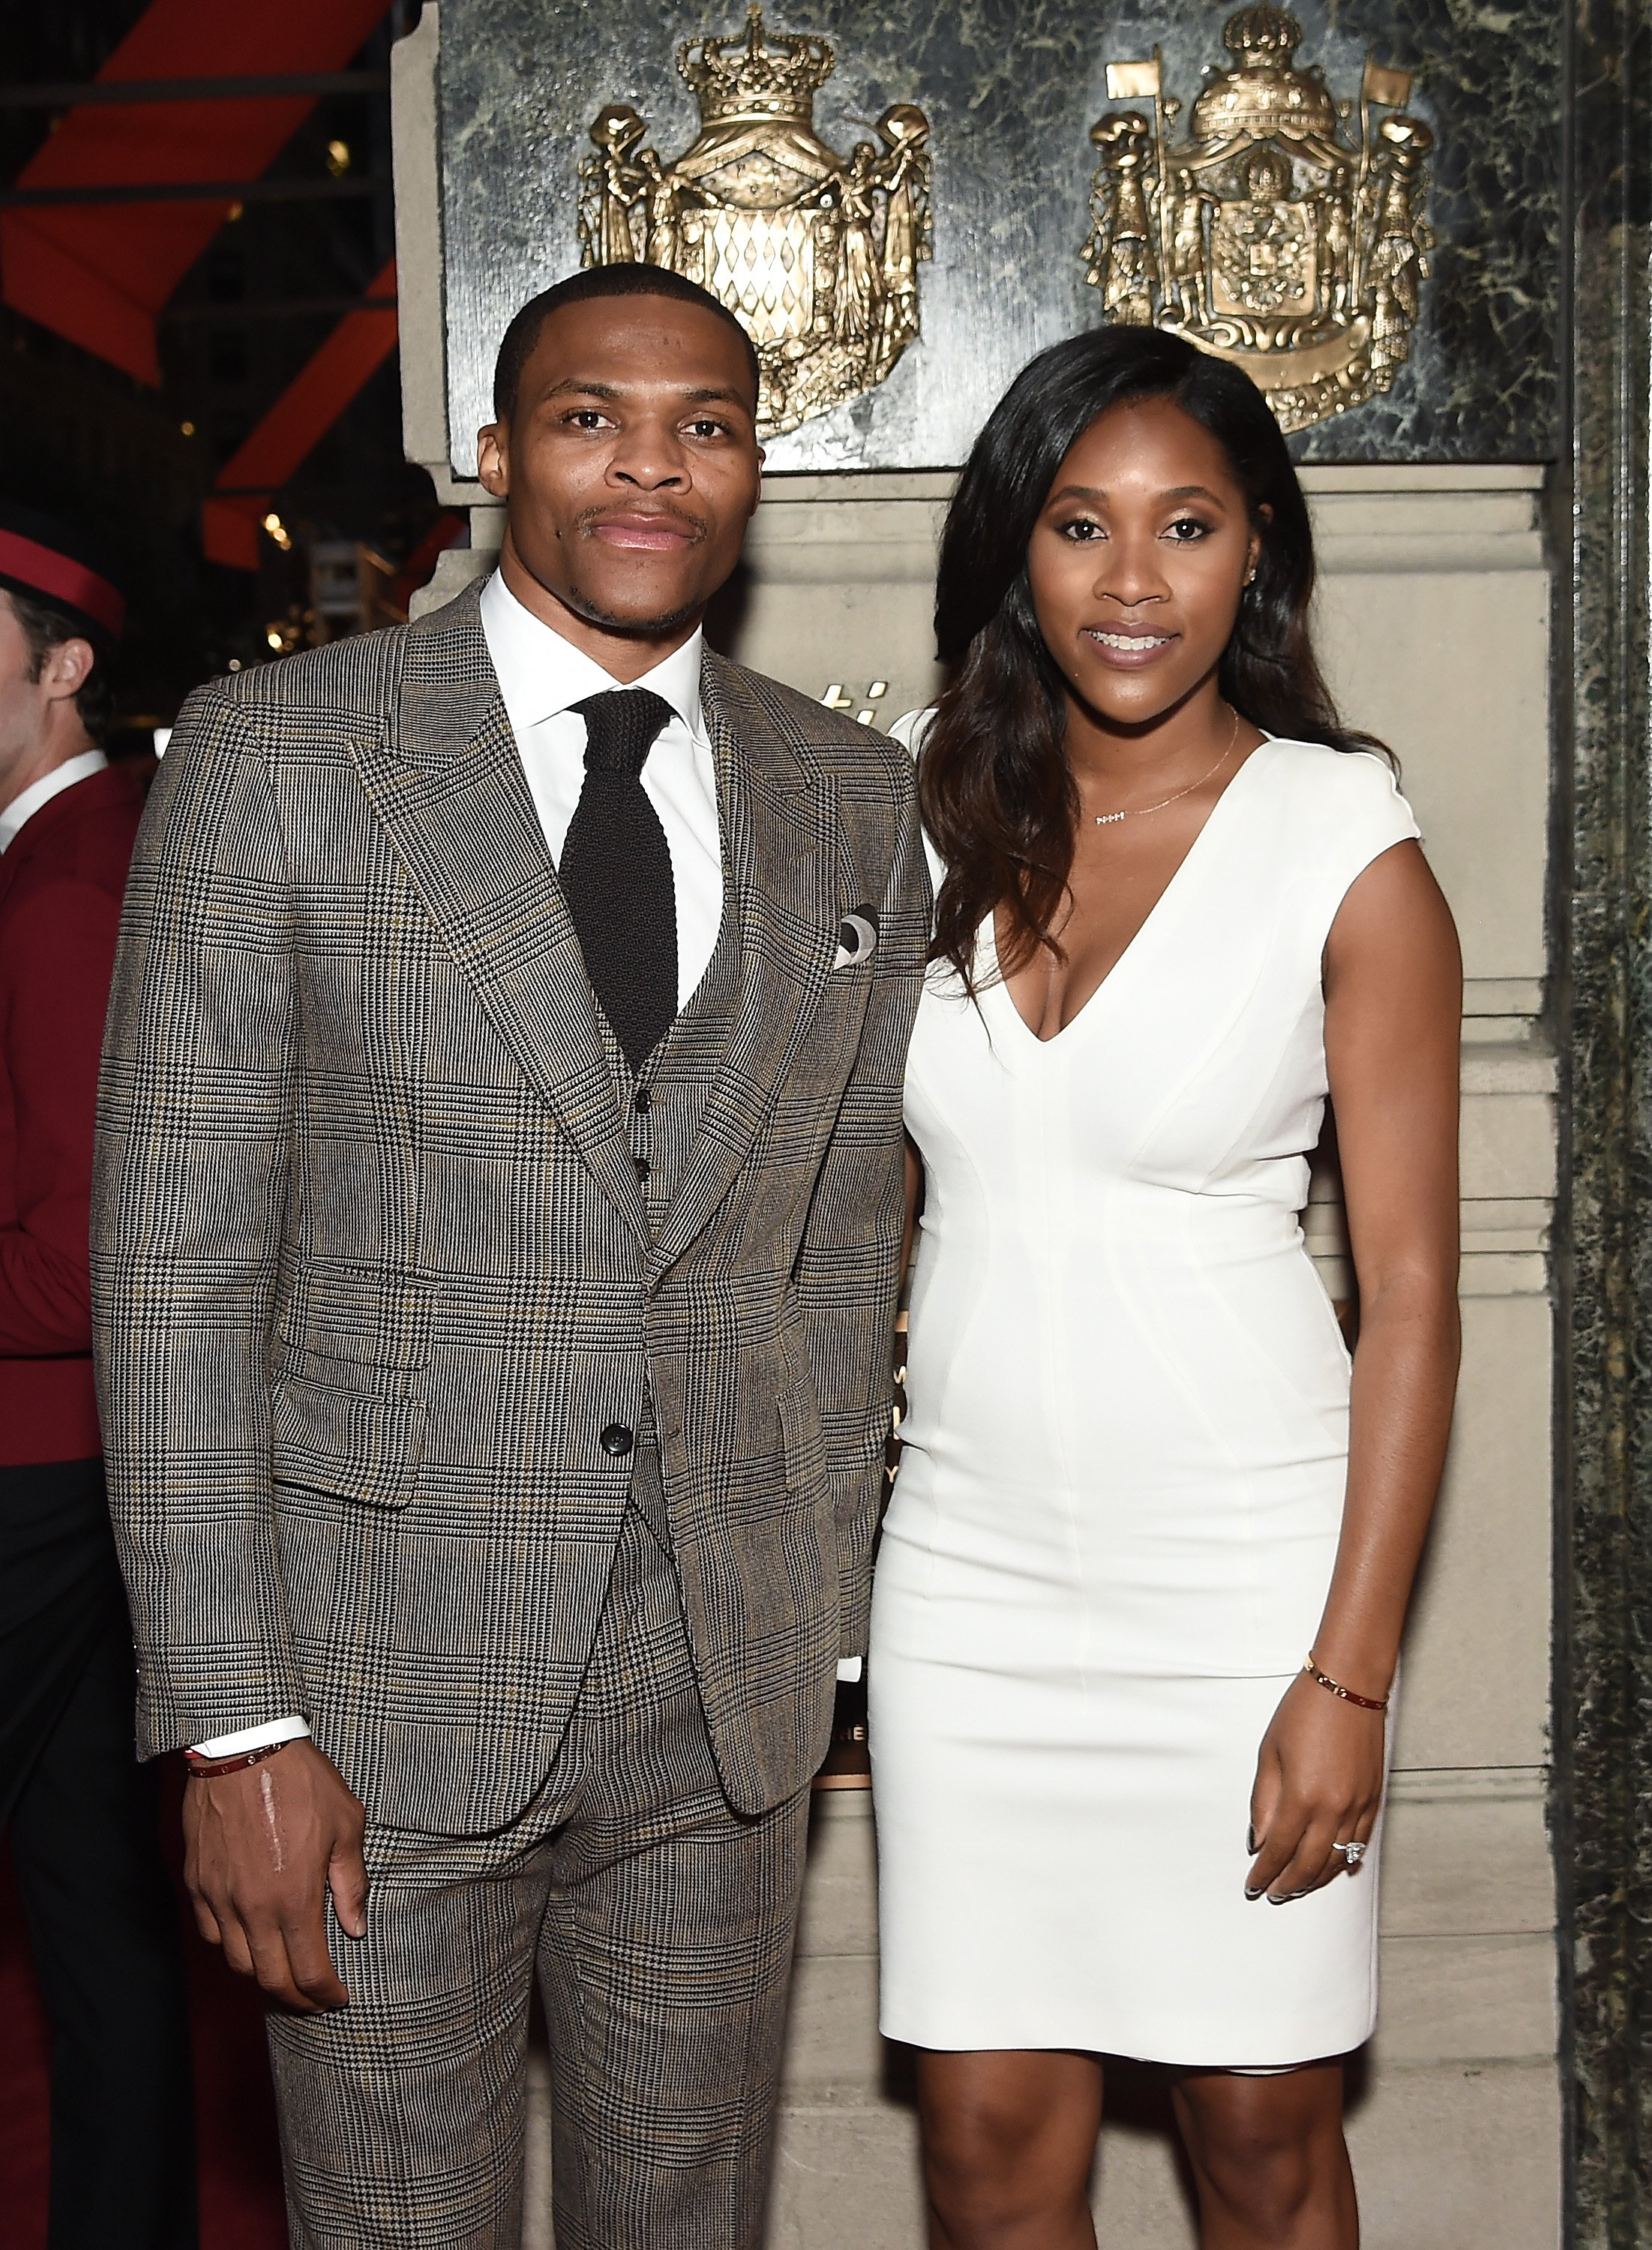 Russell Westbrook and wife Nina at The Cartier Fifth Avenue Grand Reopening Event at the Cartier Mansion on September 7, 2016 in NYC. | Photo by Nicholas Hunt/Getty Images